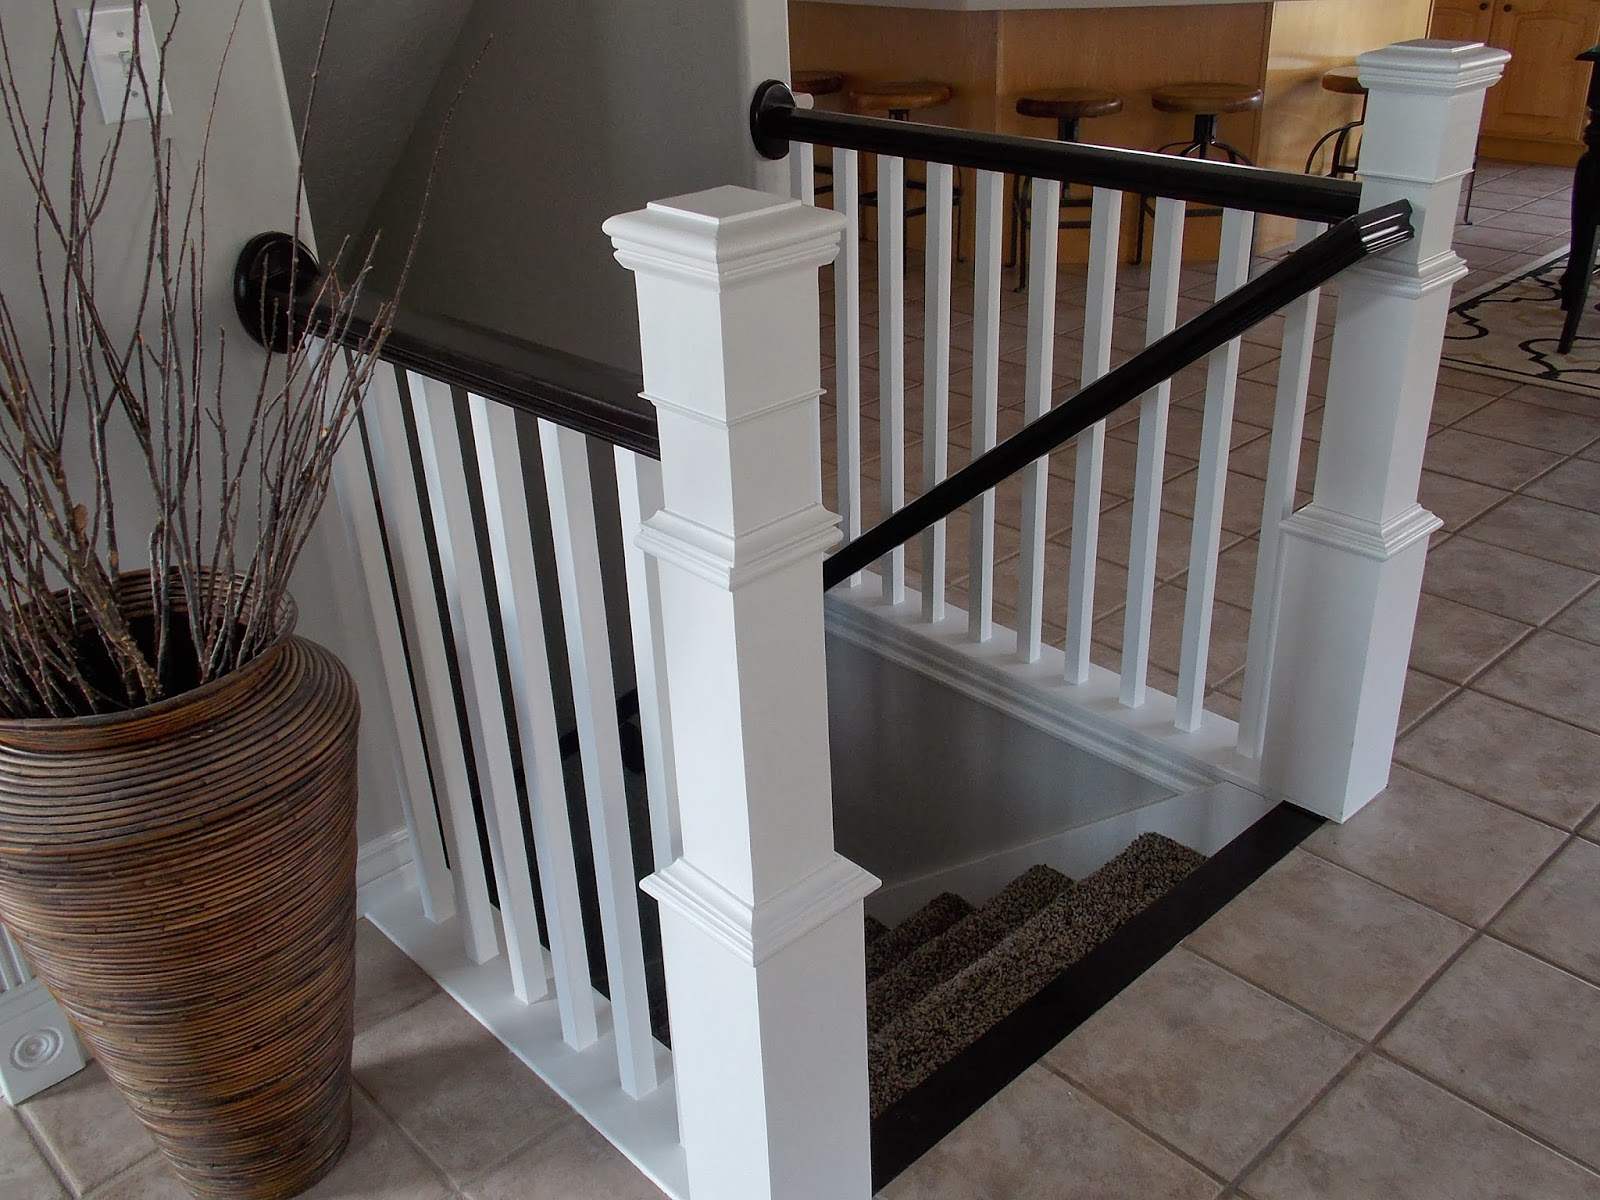 diy stair banister with new newel post and spindles tda decorating and design featured on